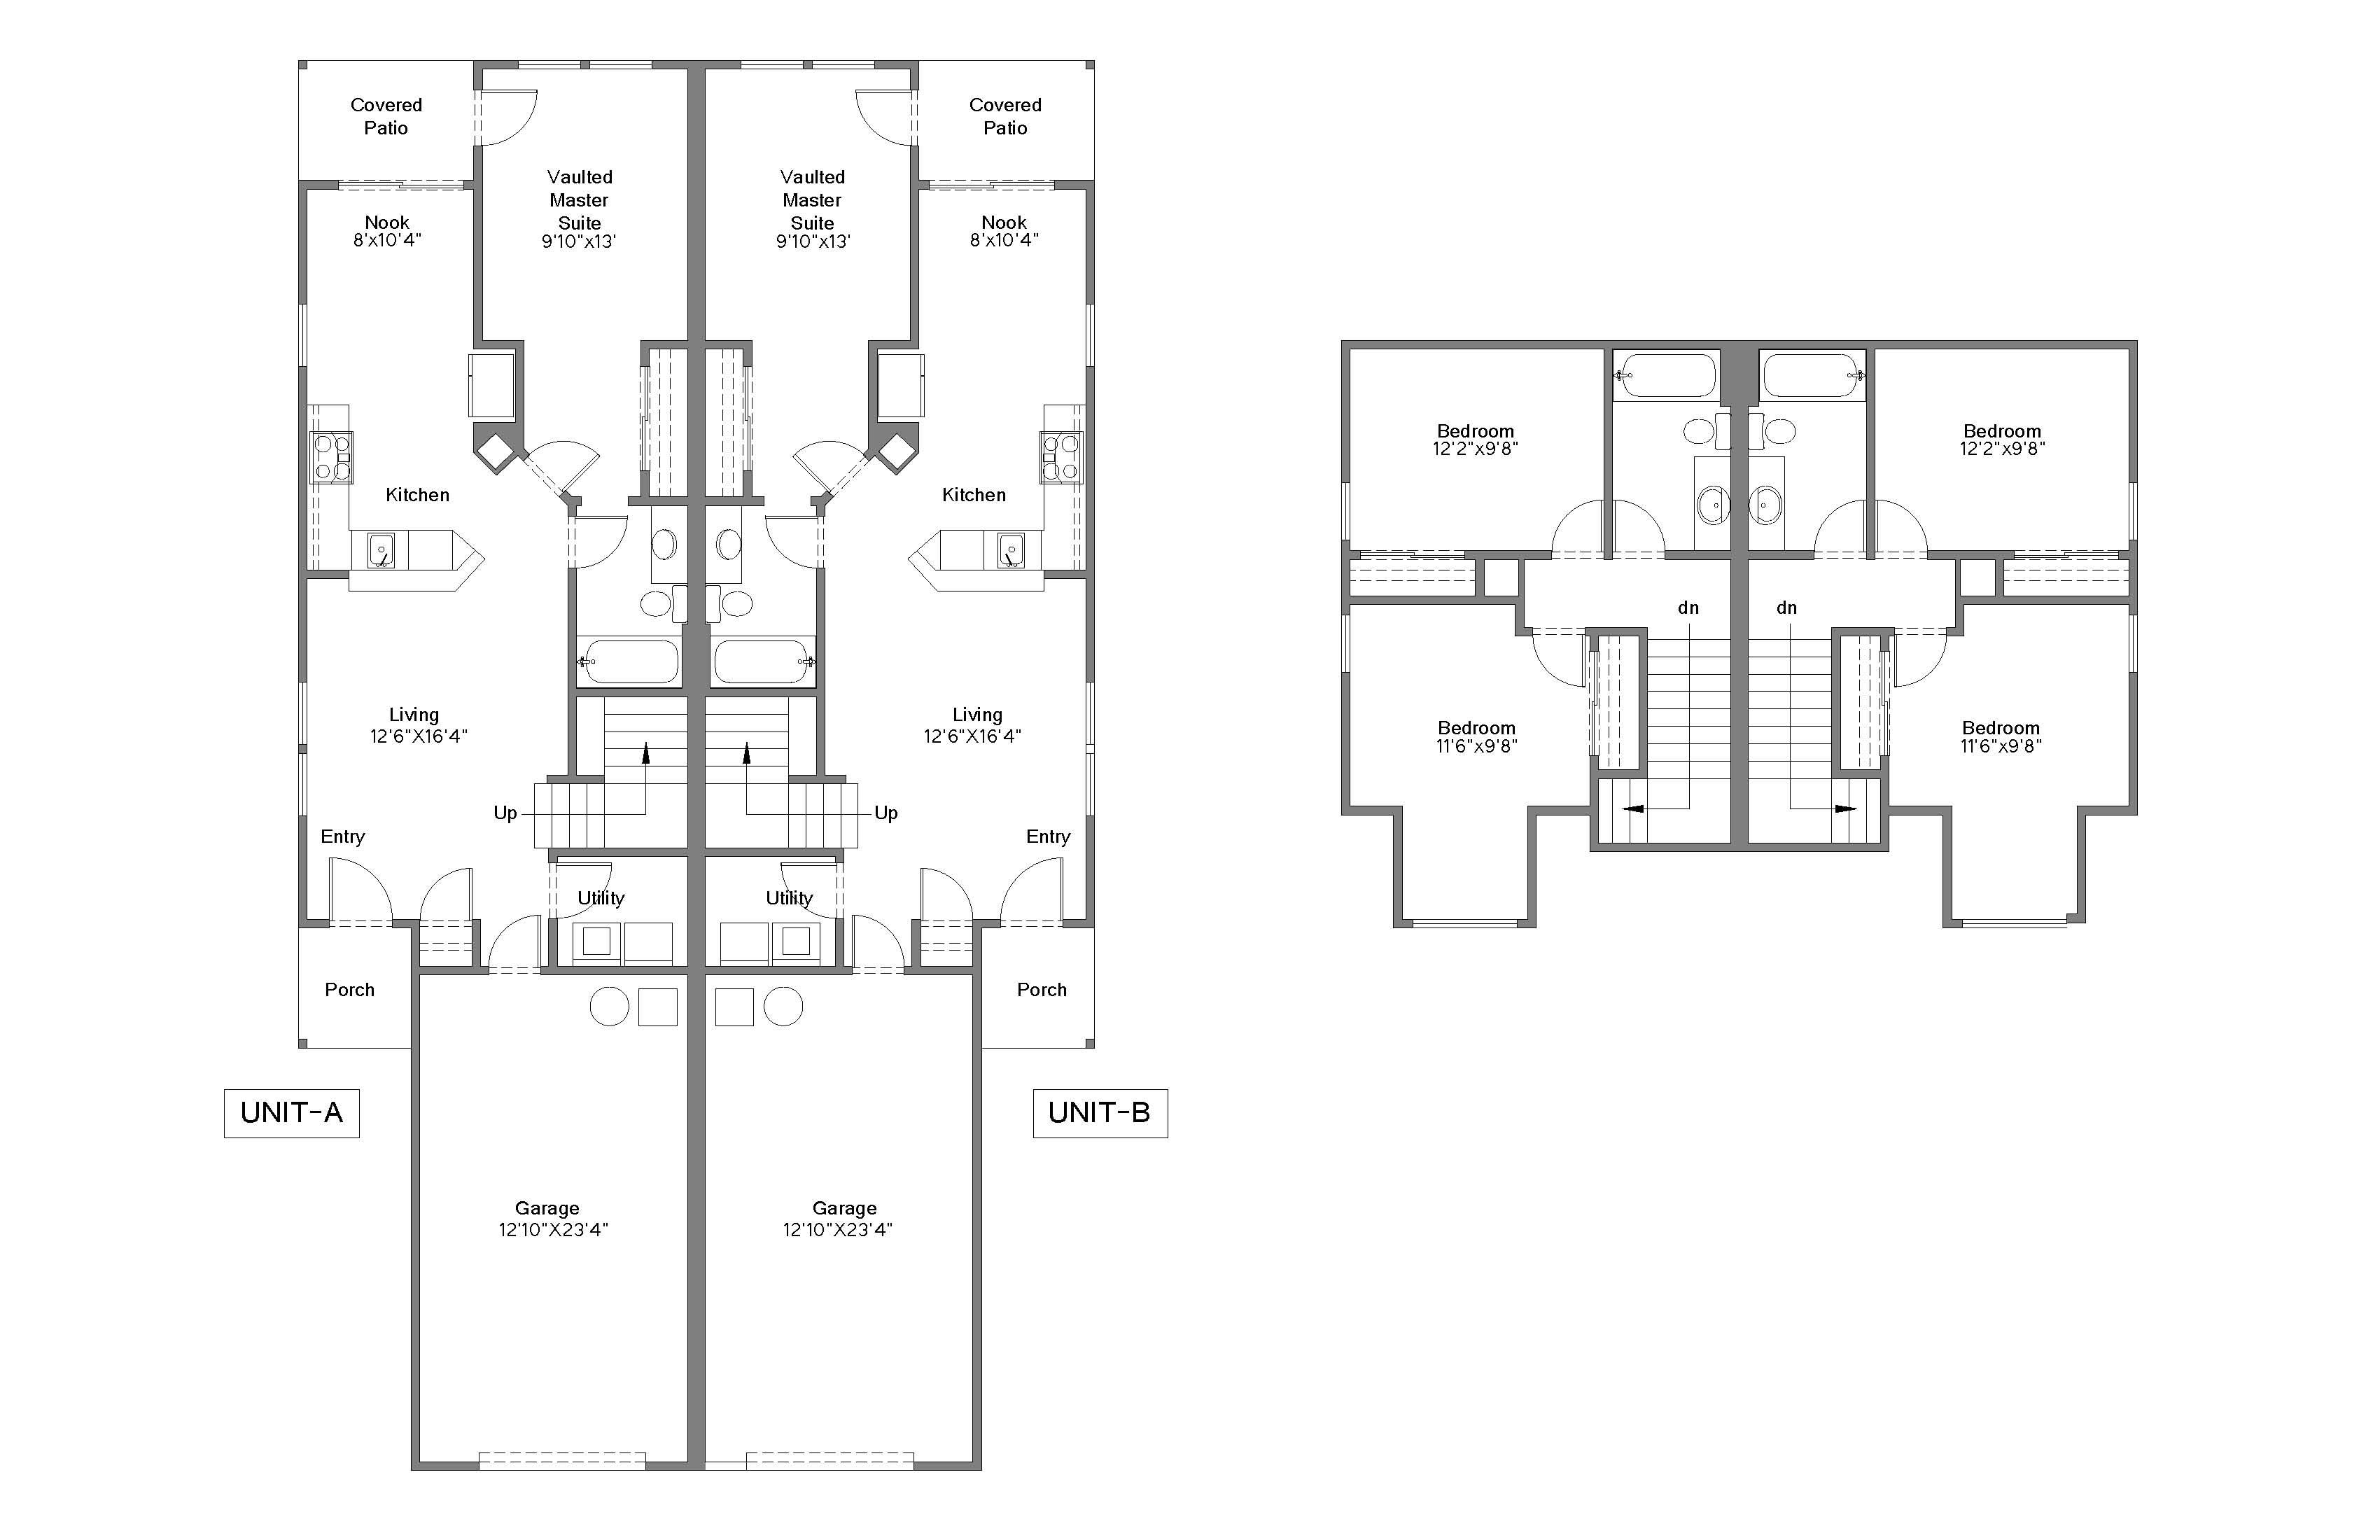 Architectural floor plan floor plan with autocad drawings for Architecture plan drawing